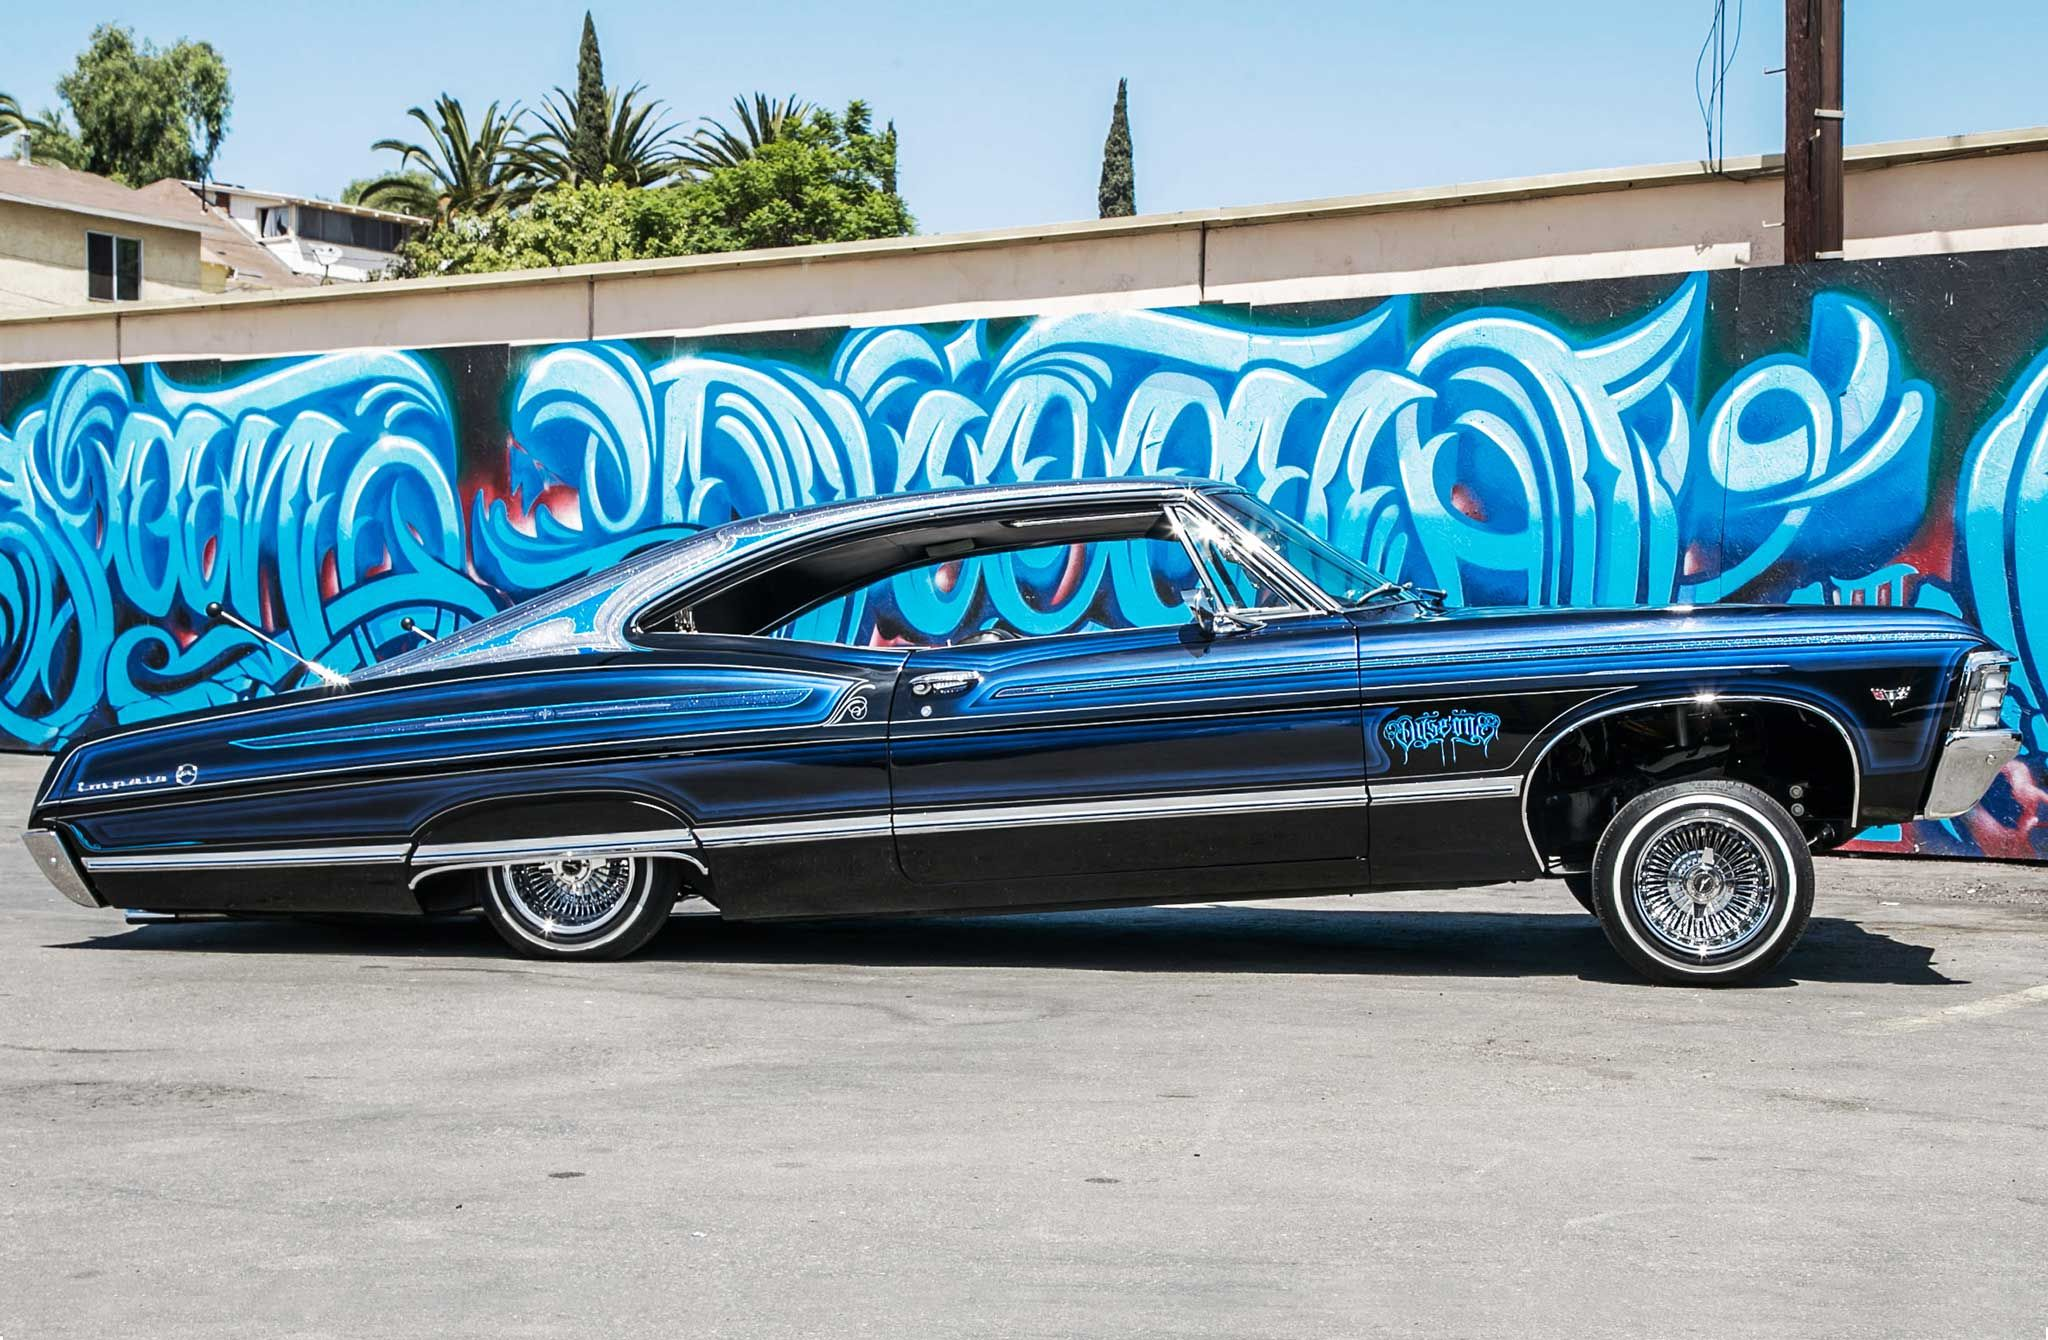 1967 Chevrolet Impala Flashback Fastback In 2020 Lowriders